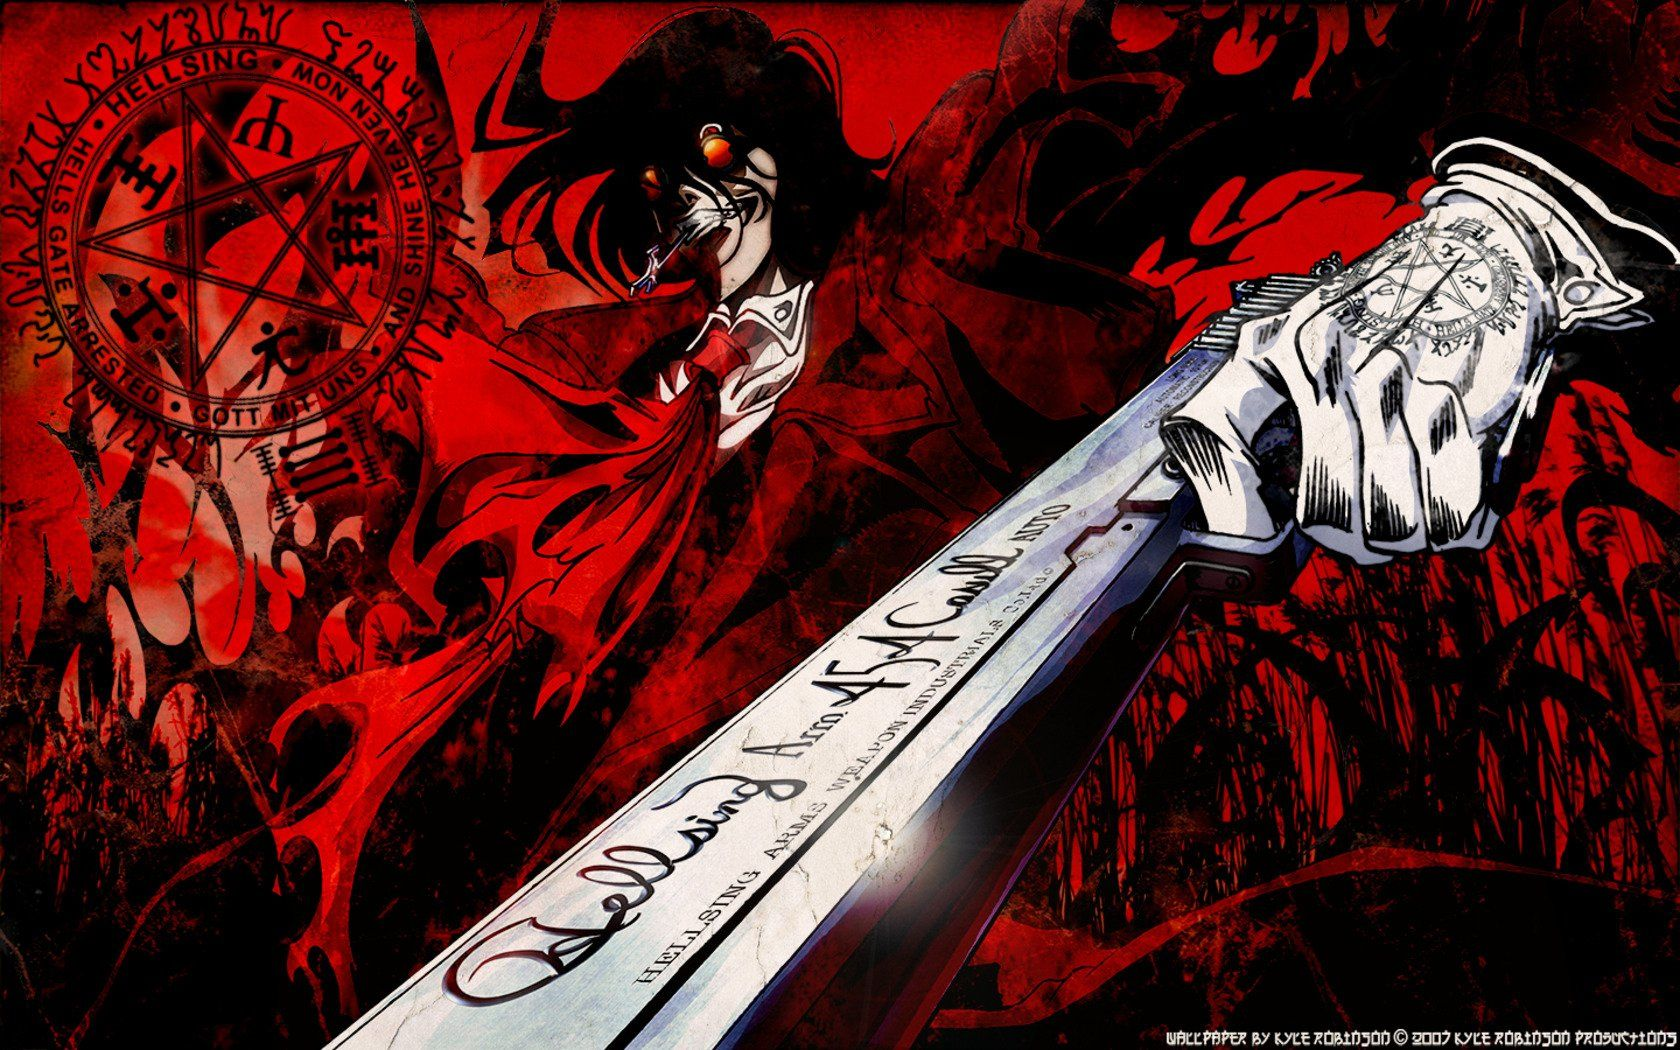 Alucard Hellsing Wallpaper 1920x1080 Manga, Indonesia